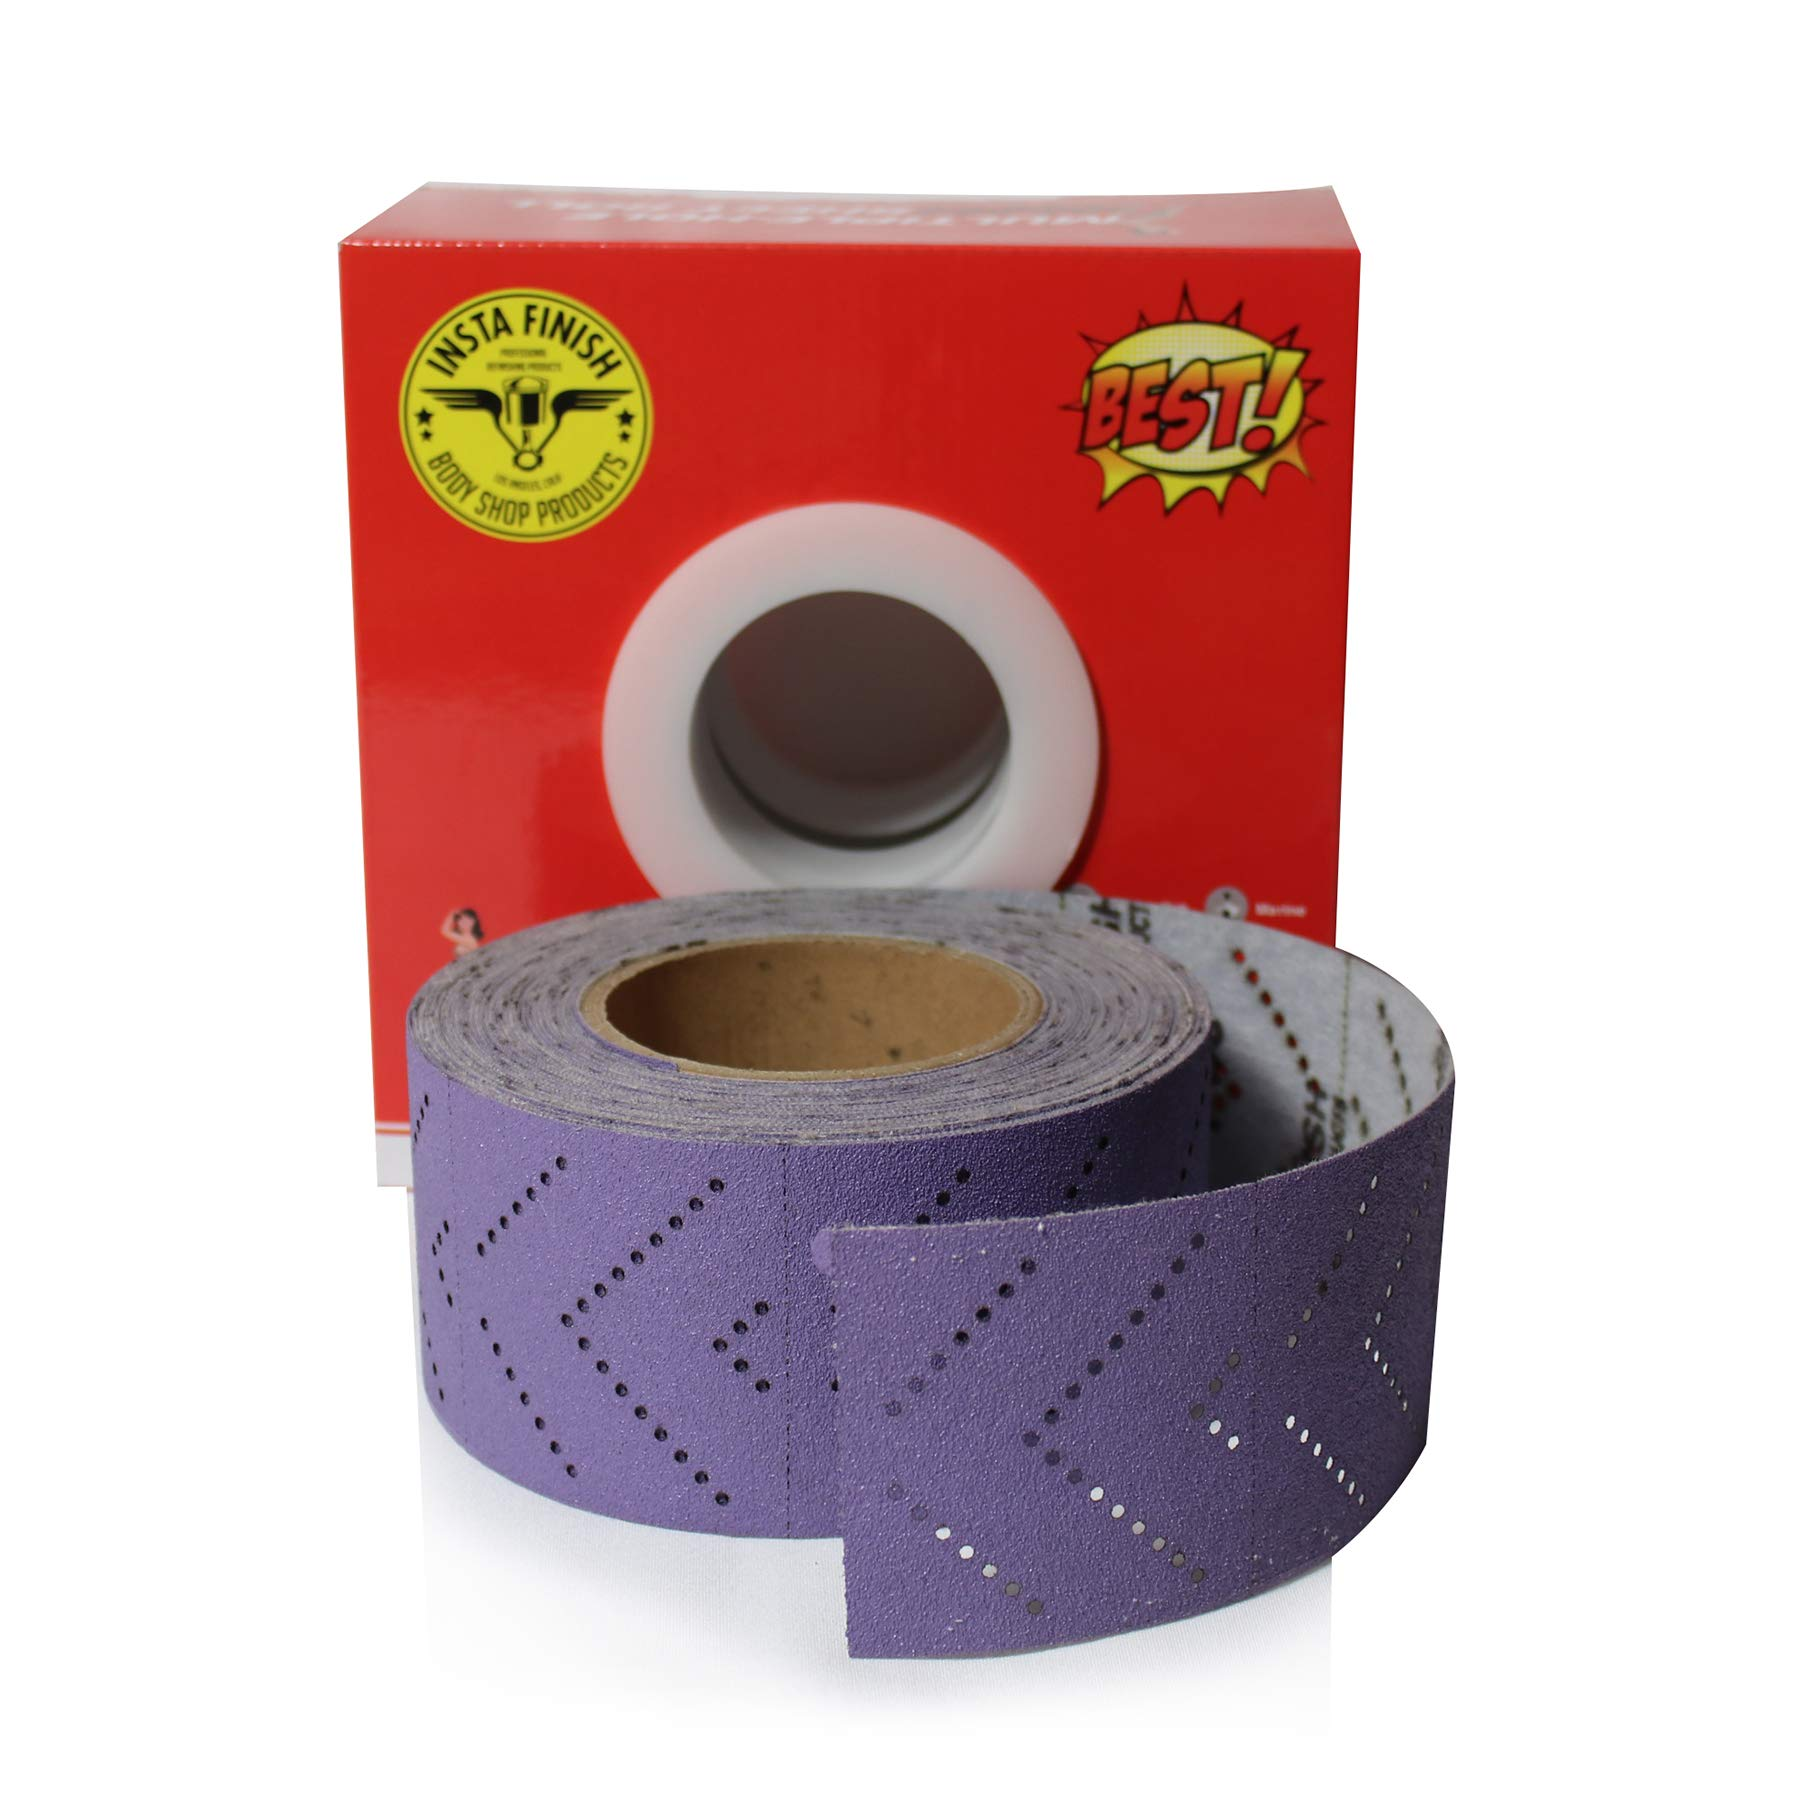 Insta Finish Sand Paper Hook & Loop Long Board (Continuous roll) 1 Roll Per Box (80 Grit) by Insta Finish